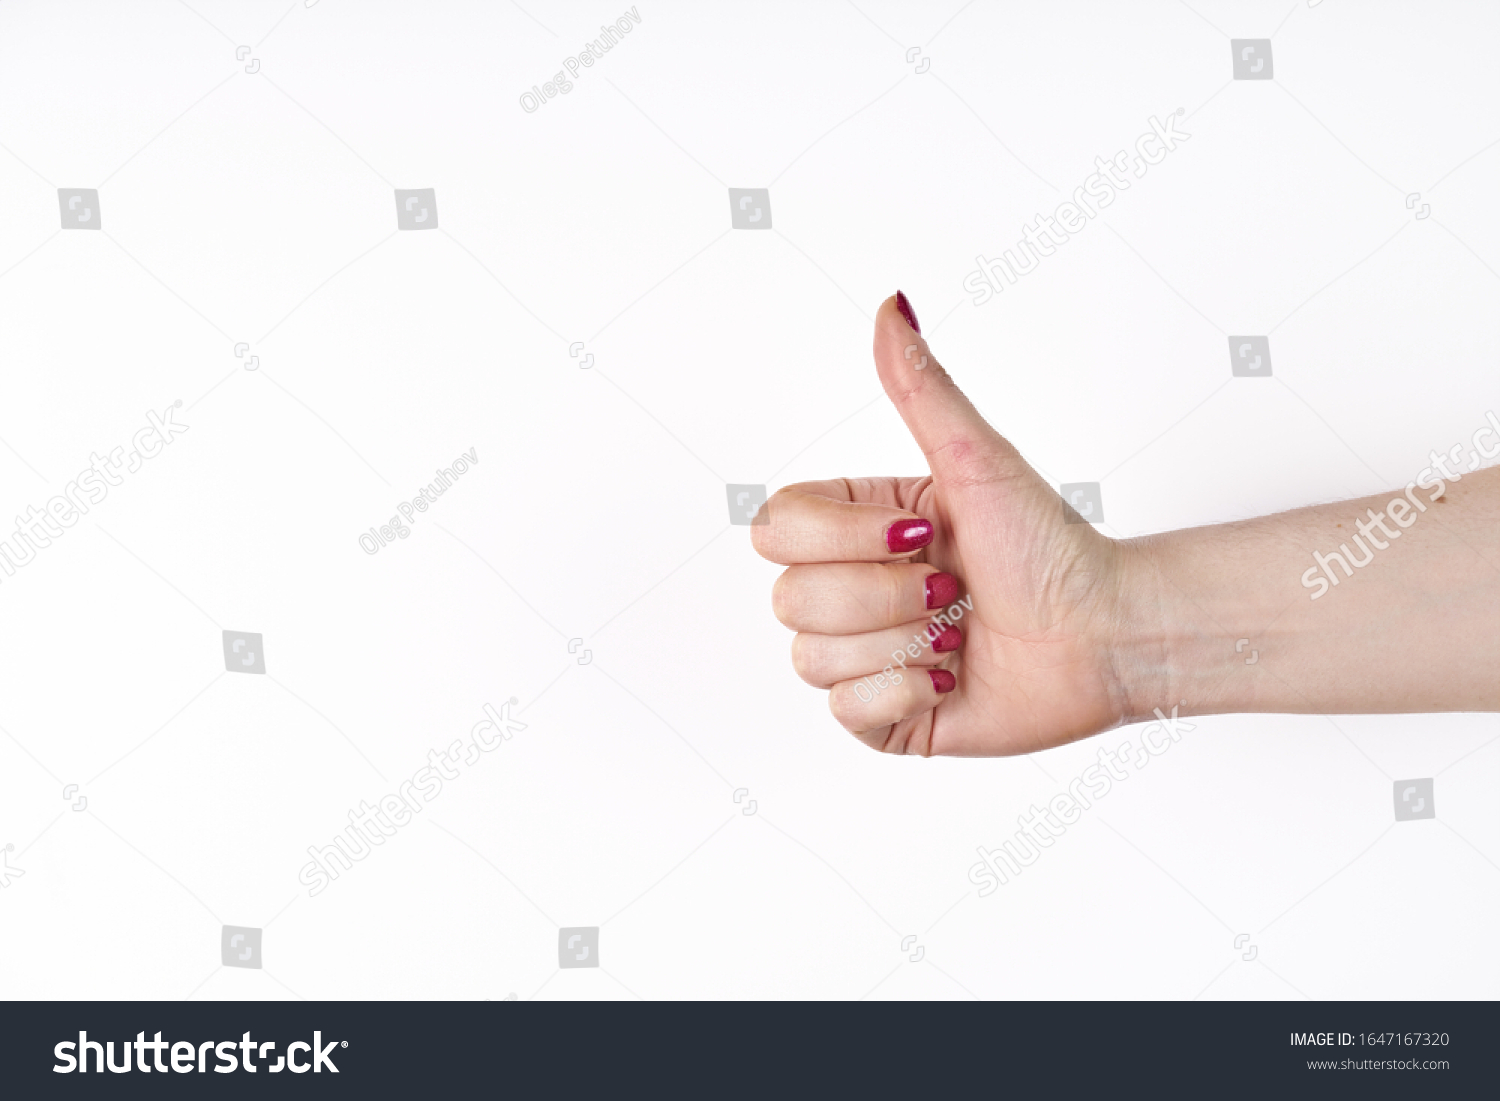 Closeup of female hand showing thumbs up sign against white background. #1647167320